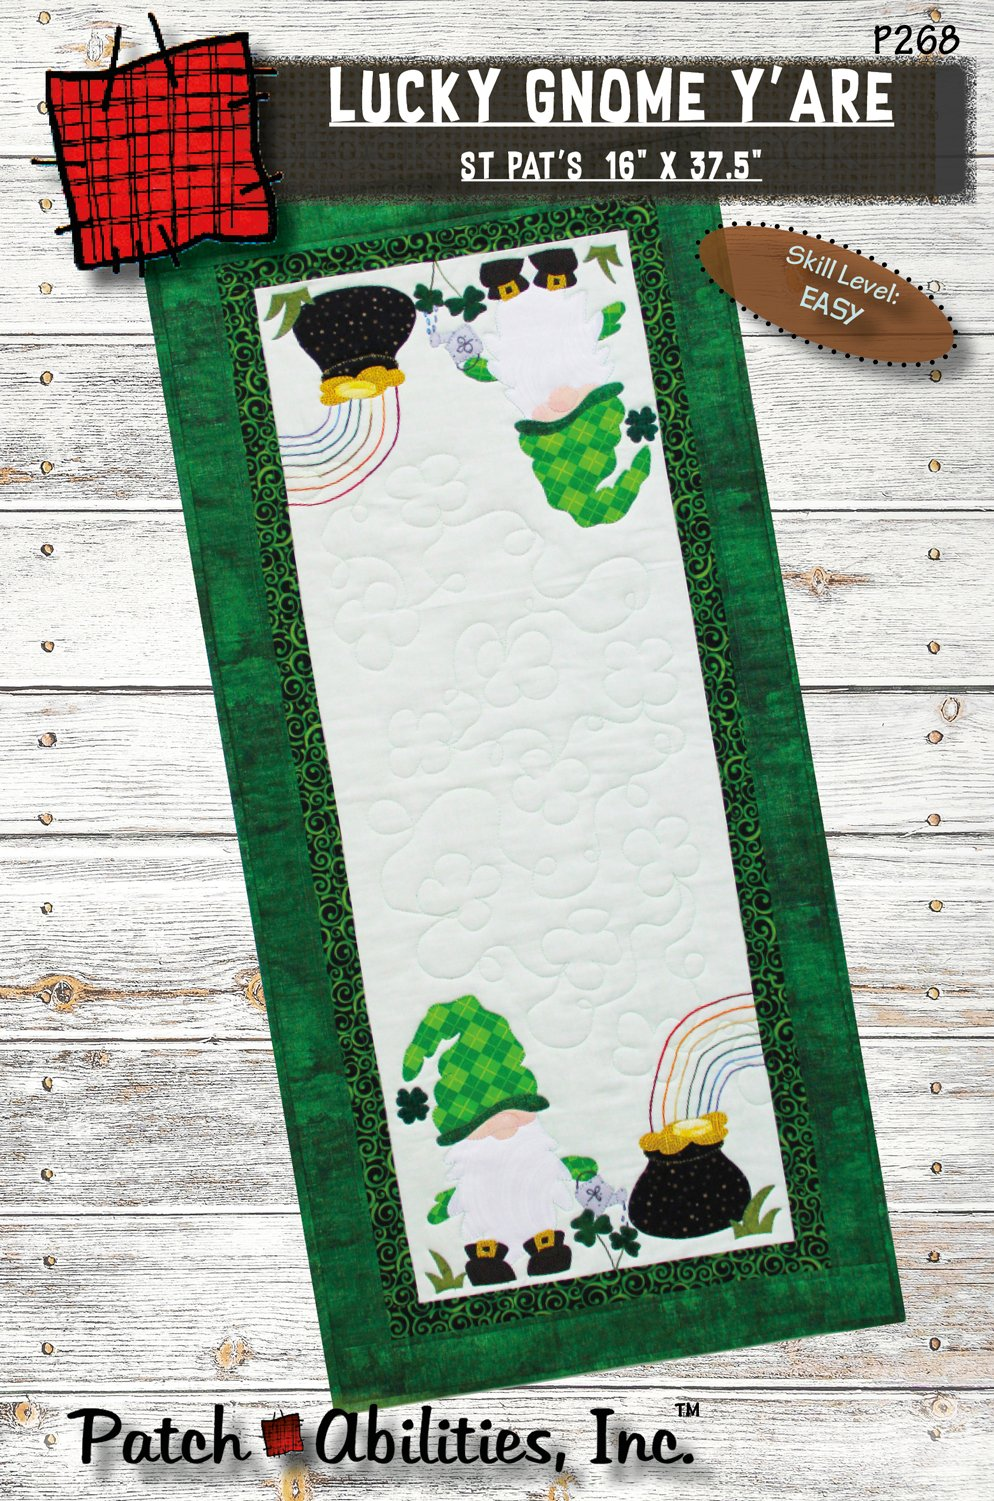 P268 Lucky Gnome Y'are Table Runner